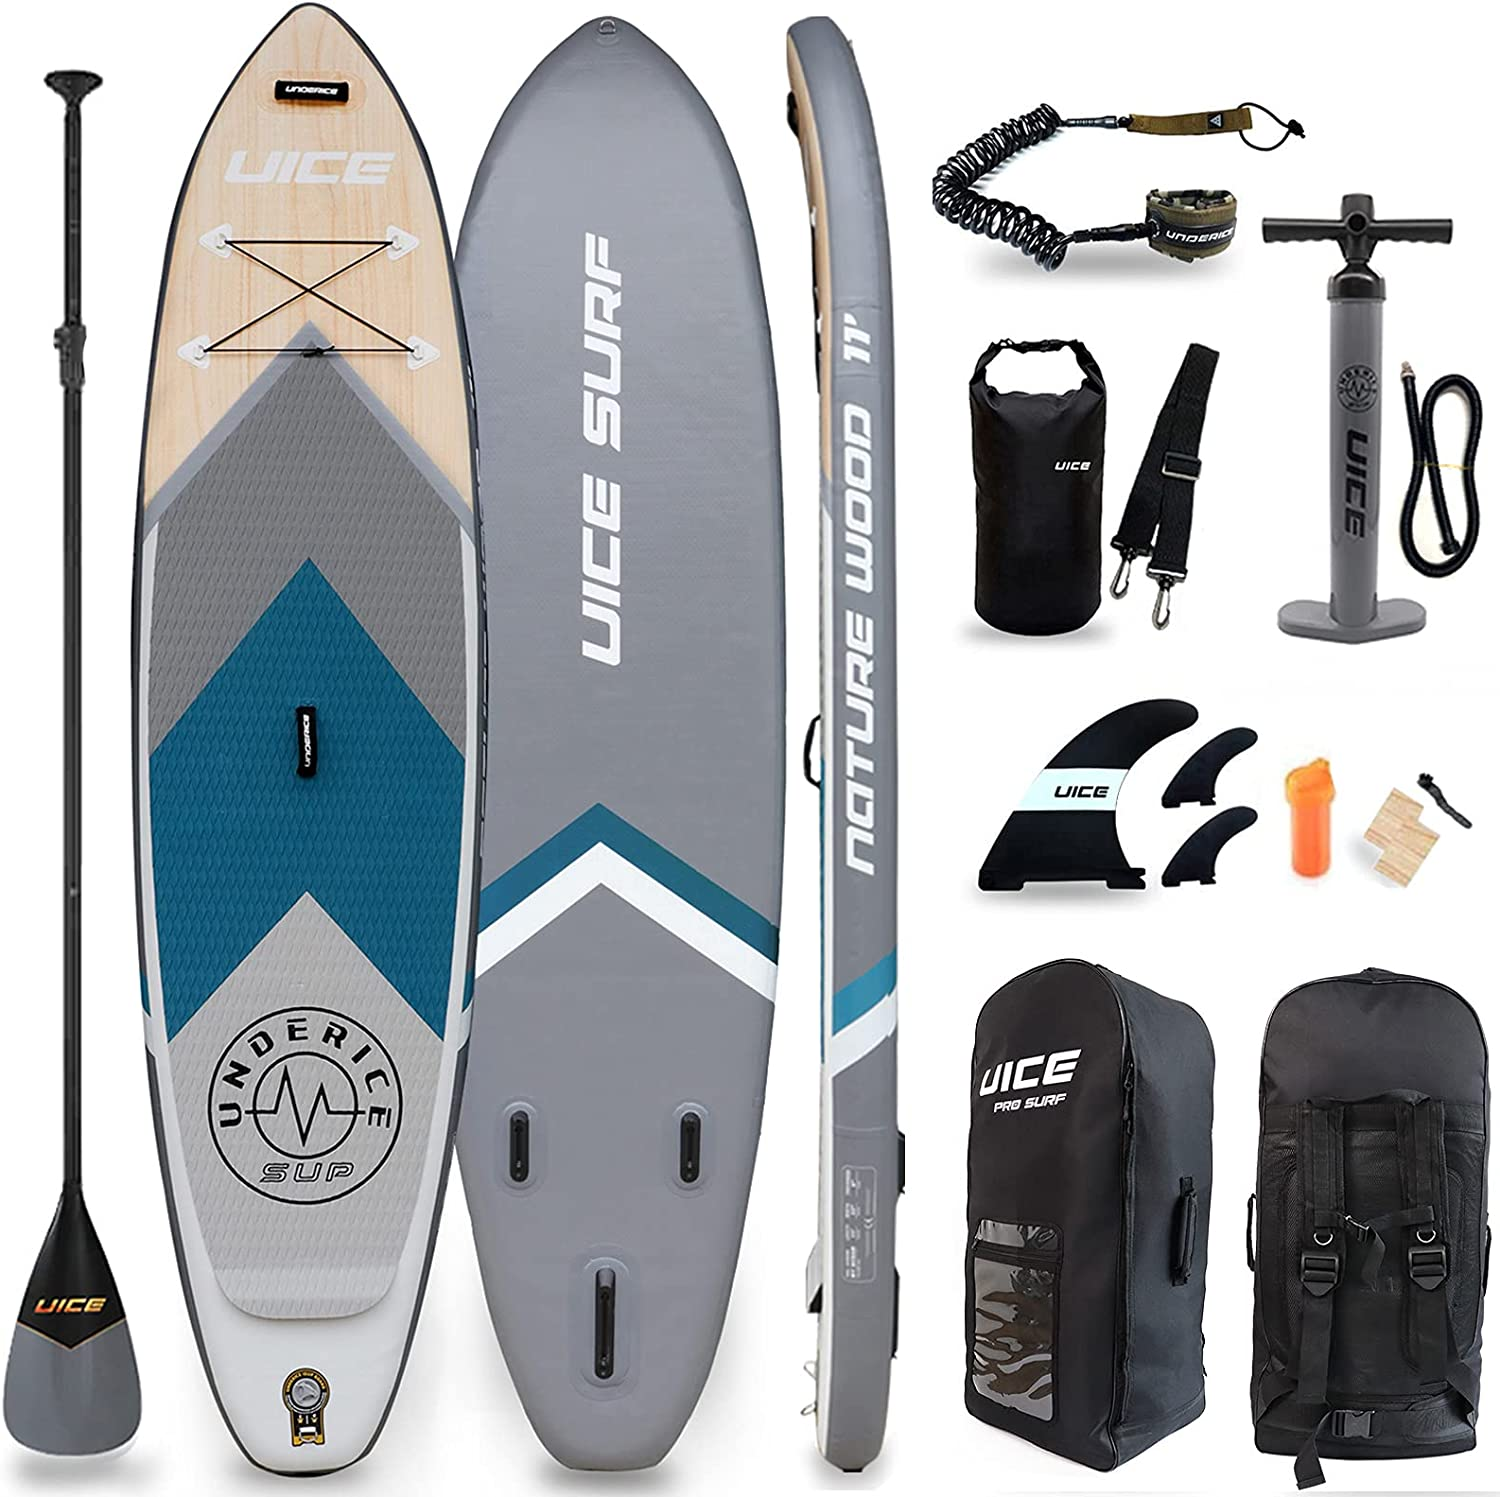 UICE Grey Wood Inflatable Stand Clearance SALE! Limited time! excellence Up x6 11'x33 Board Paddle Uniqu